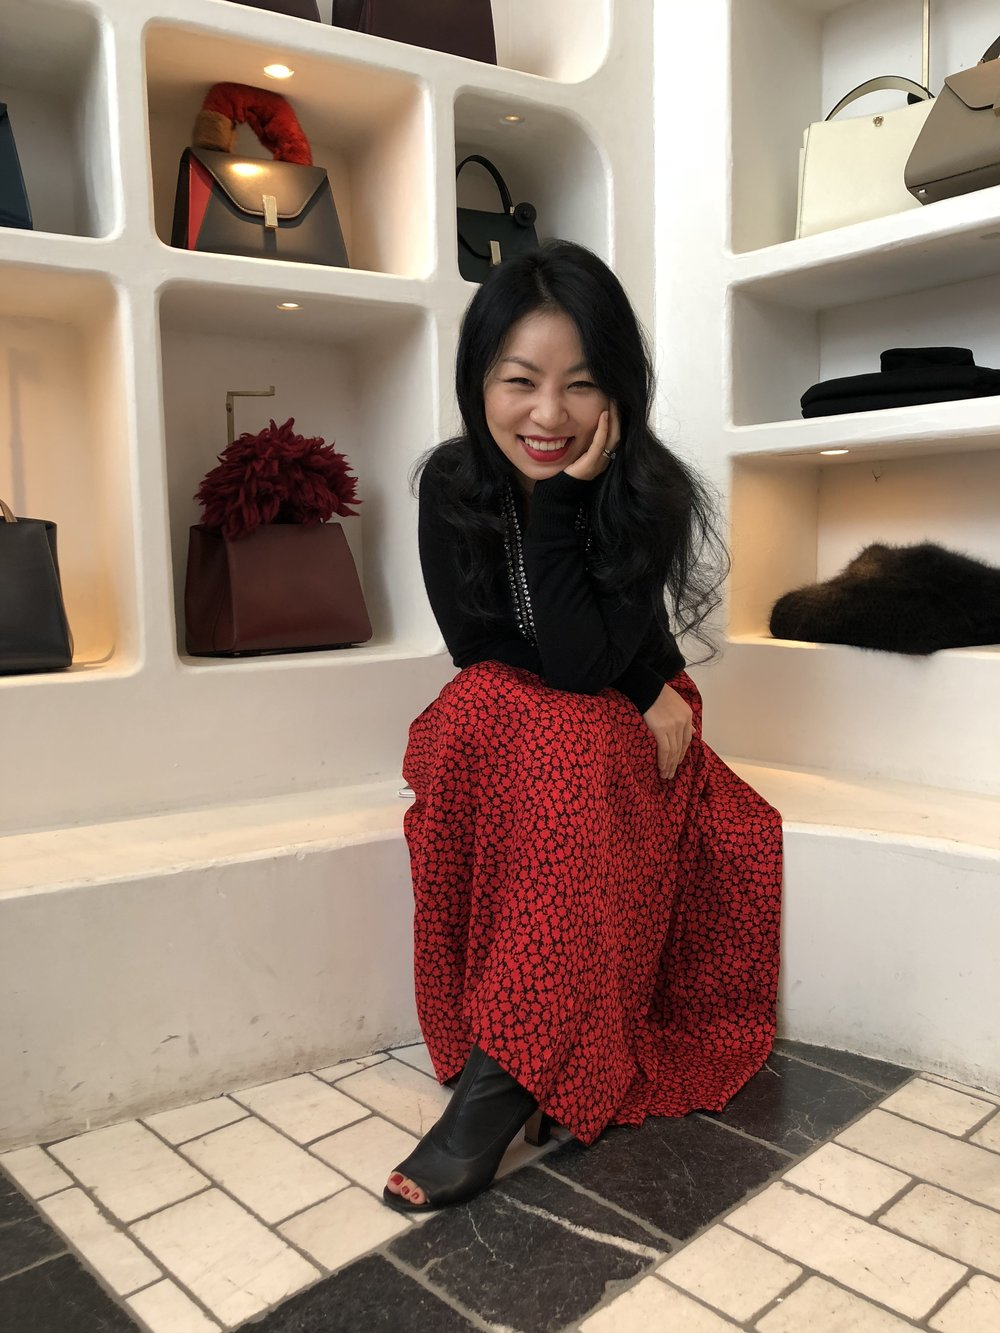 Yura is trilingual (Mandarin, Korean and English). She's a mom to one cool little dude. We love having her on our team - you can catch her in store on Mondays, Tuesdays  and Wednesdays.